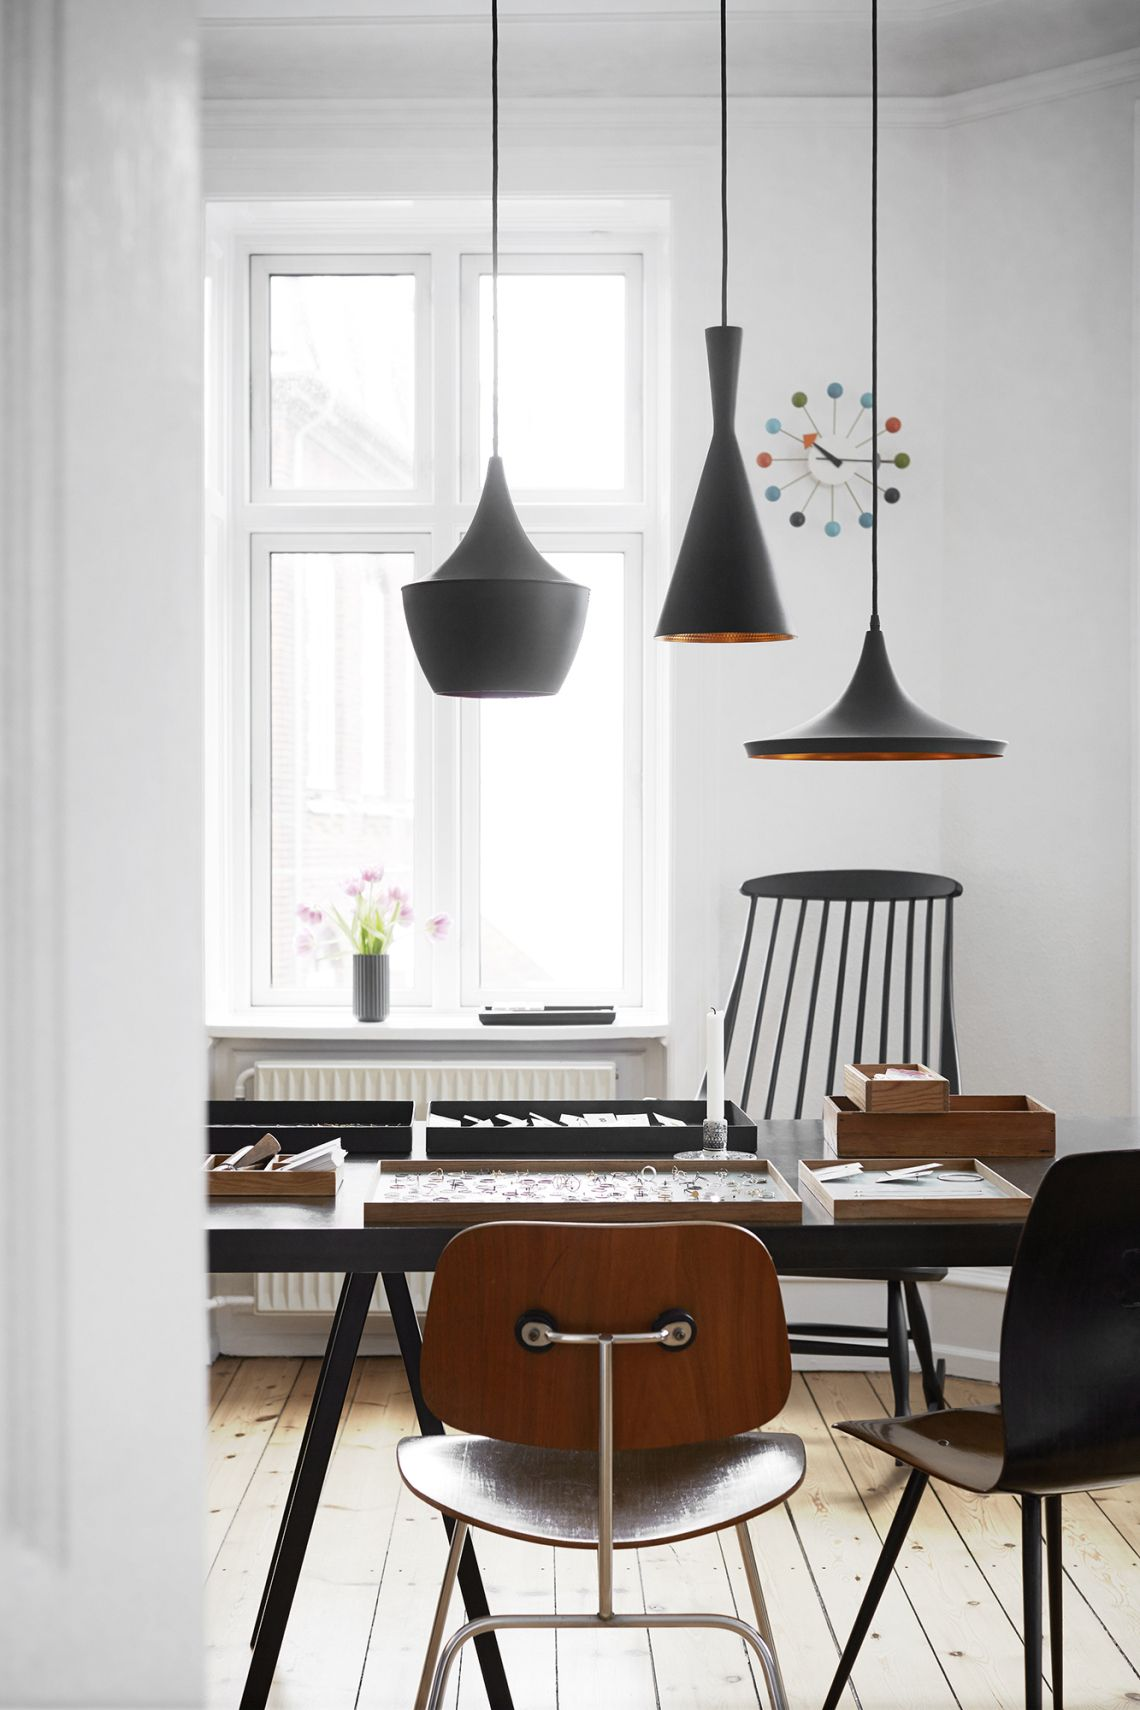 Danish Home With New And Old Design Classics Decor Modern Room Interior Inspiration